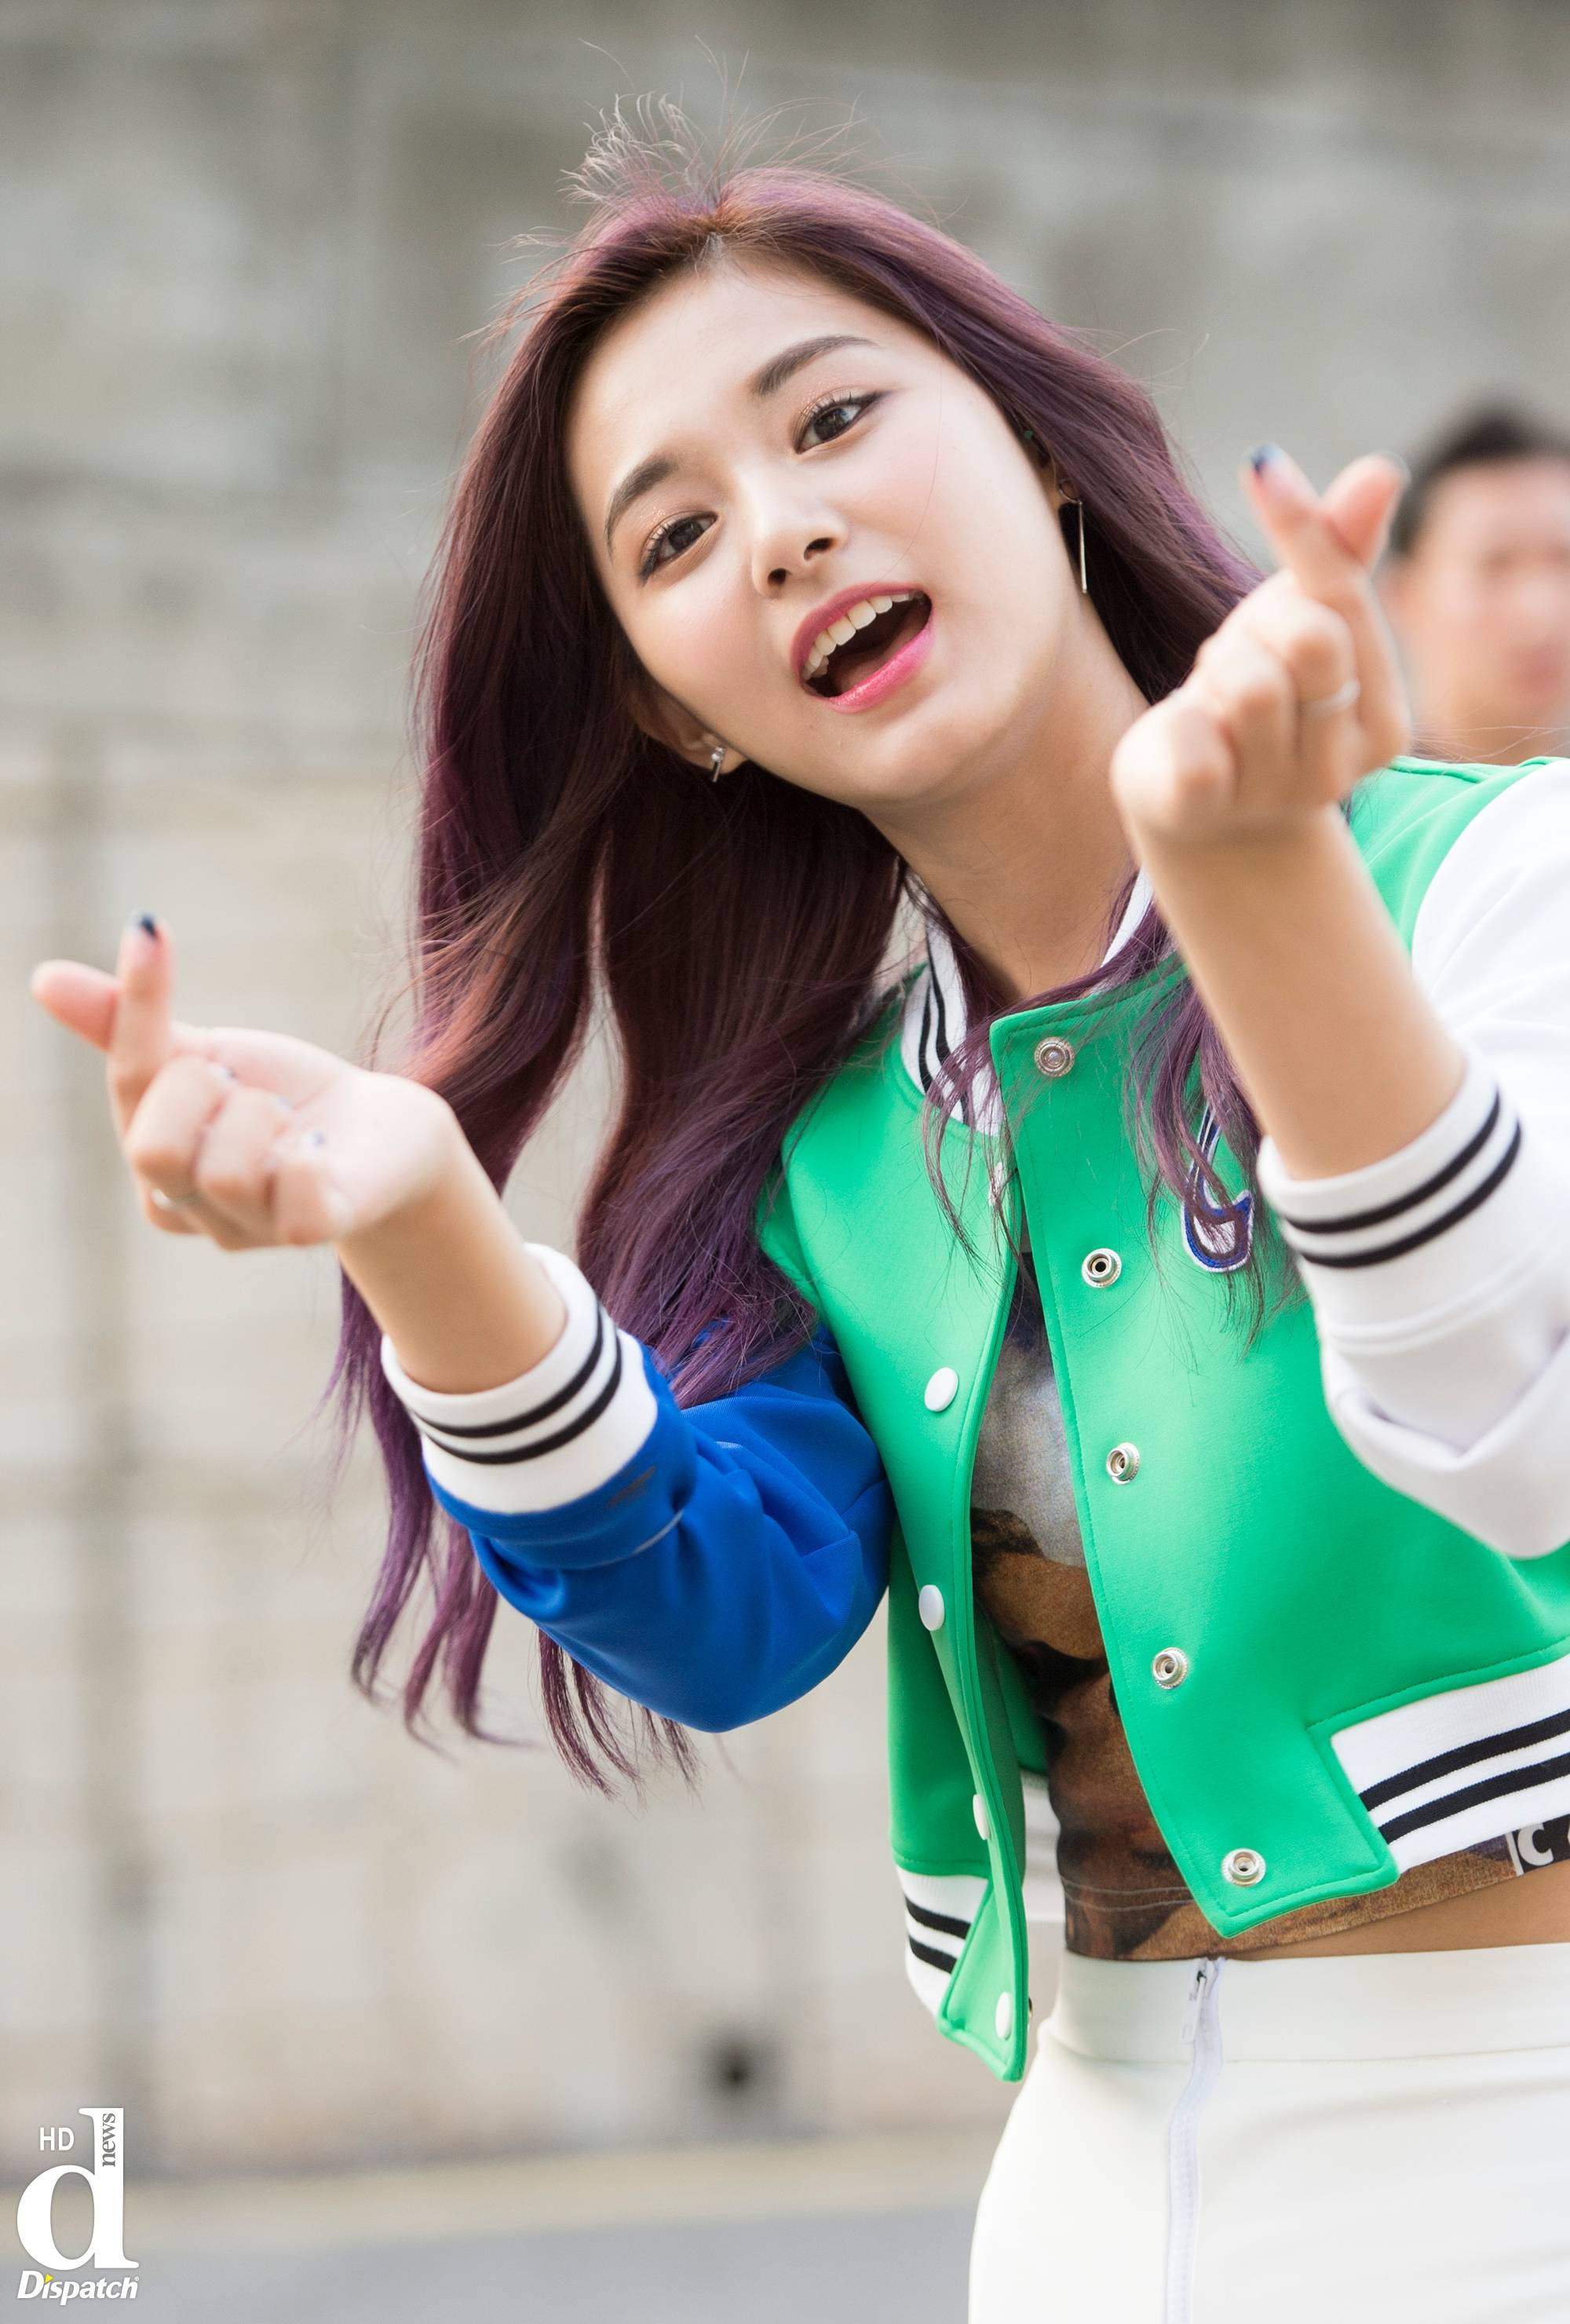 Twice Tzuyu Wallpapers Wallpaper Cave